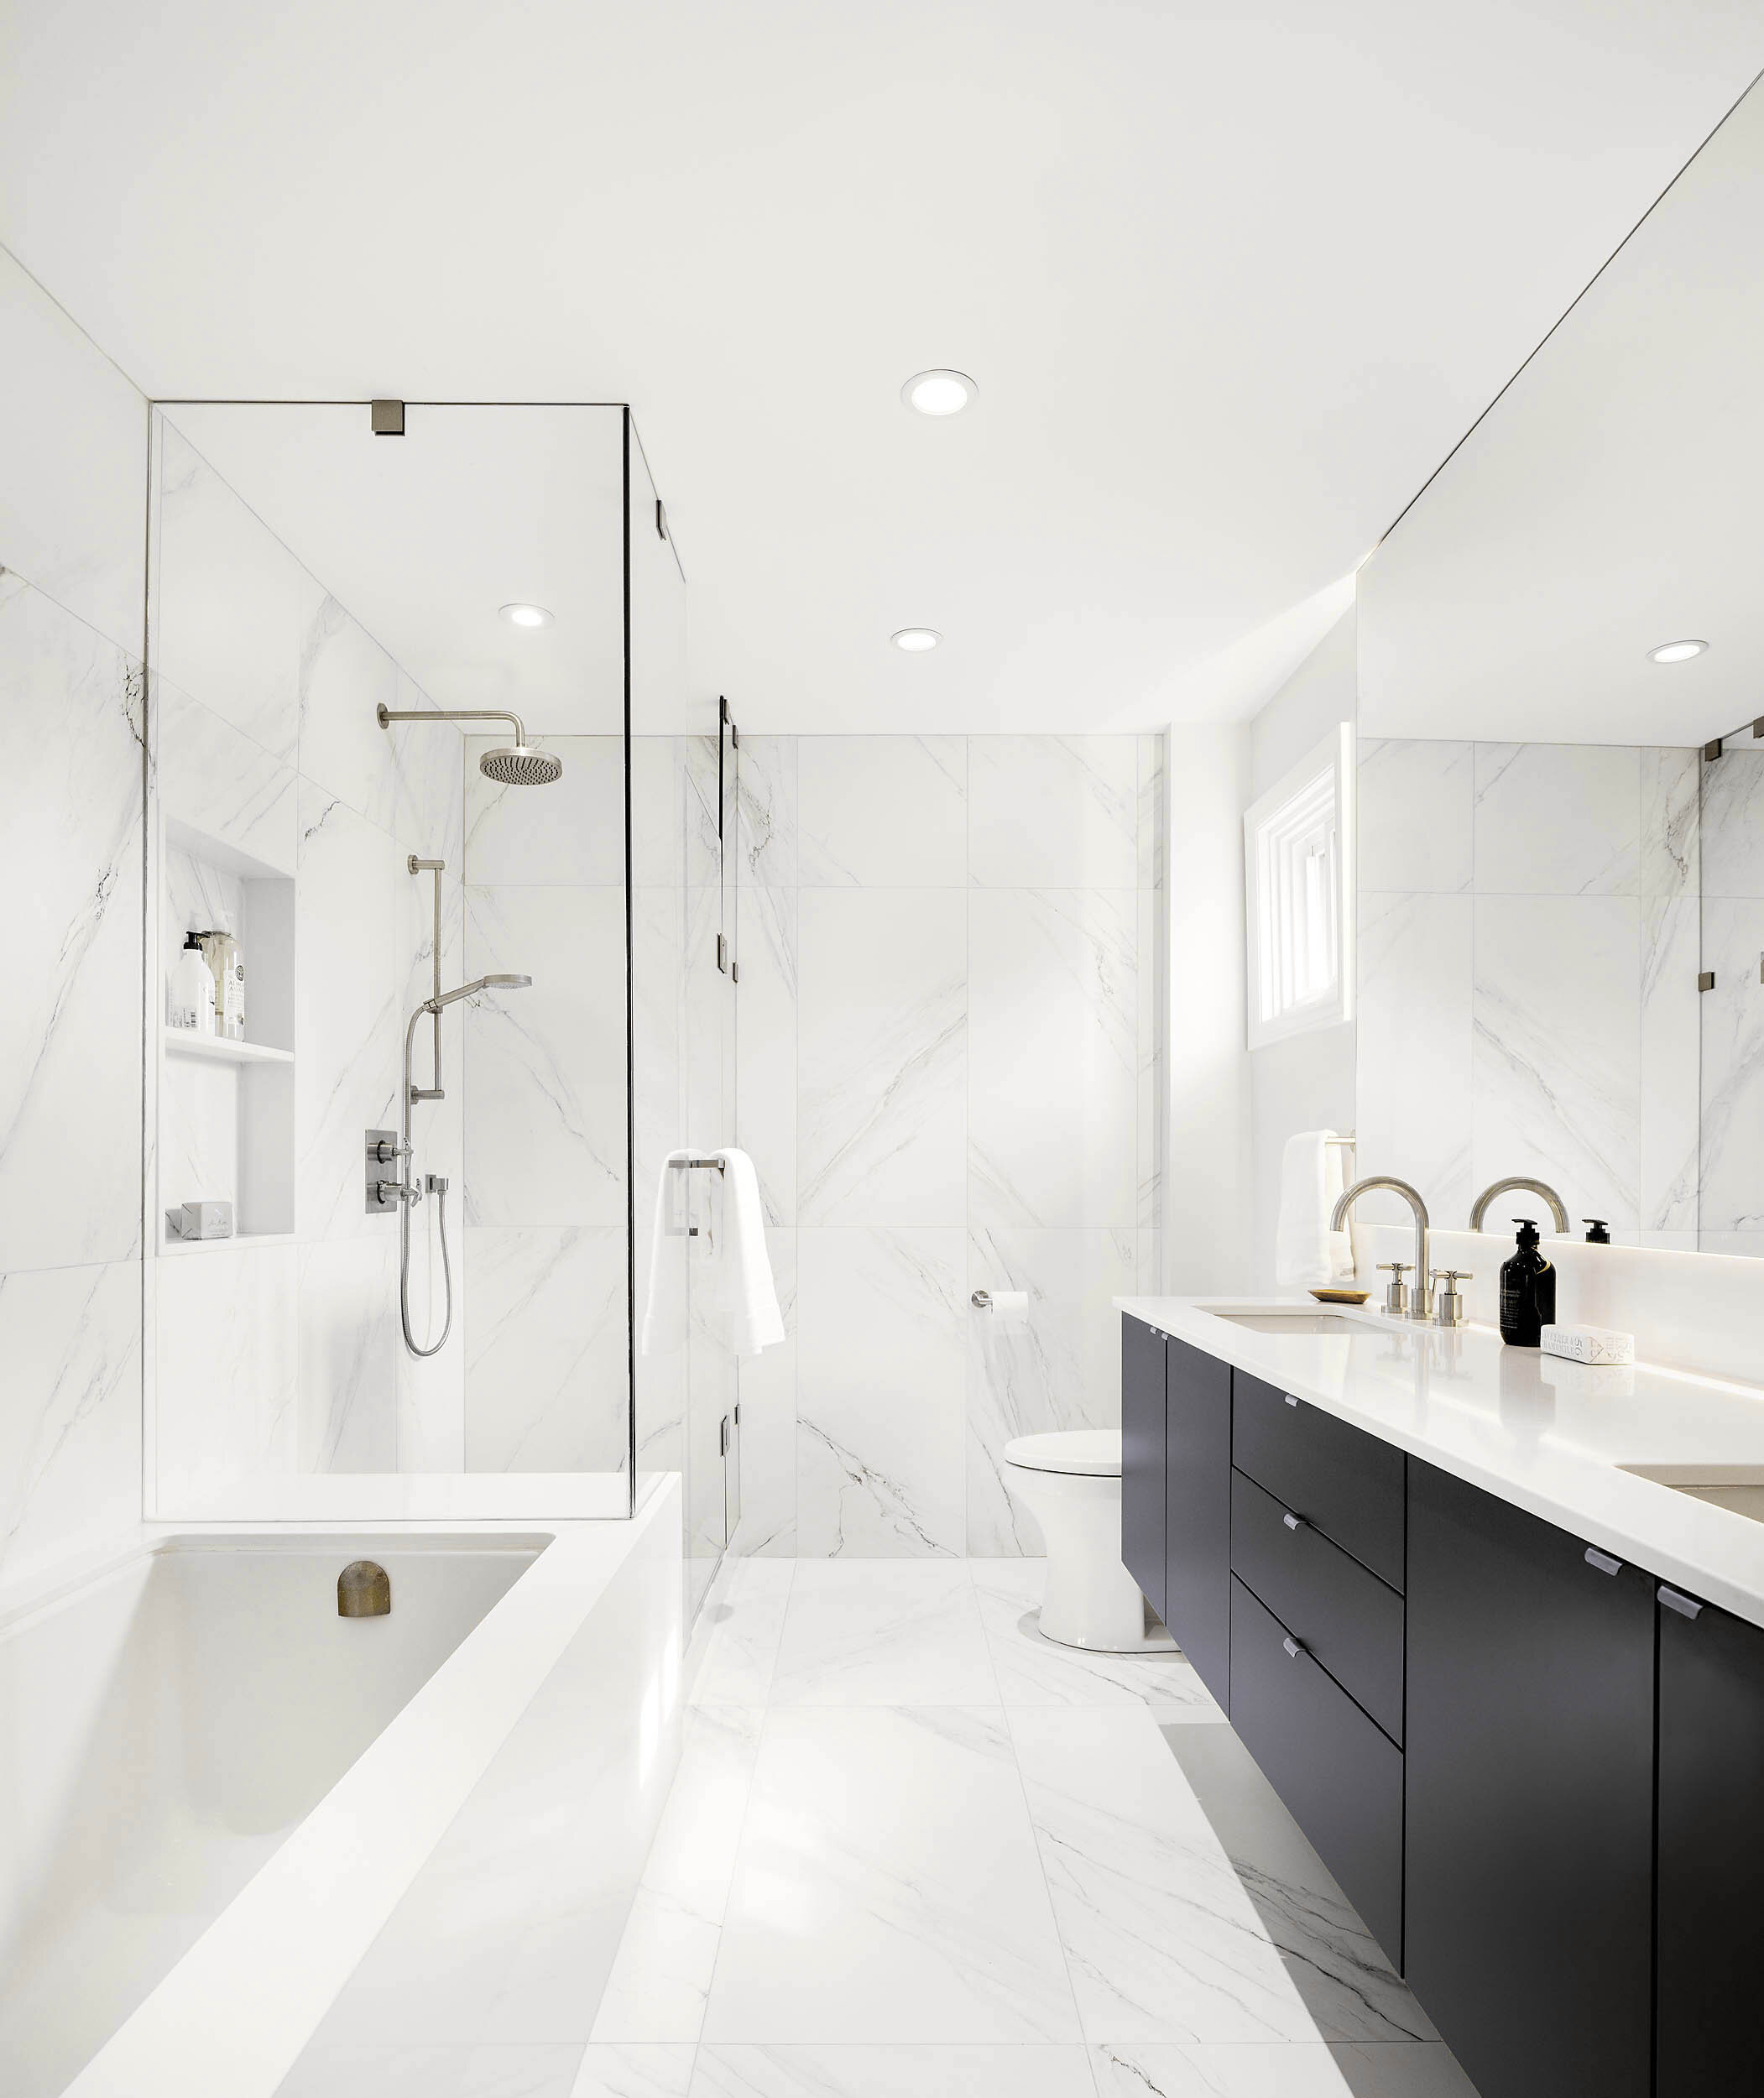 Bathroom Interior Design Inspiration Photography by Worker Bee Supply